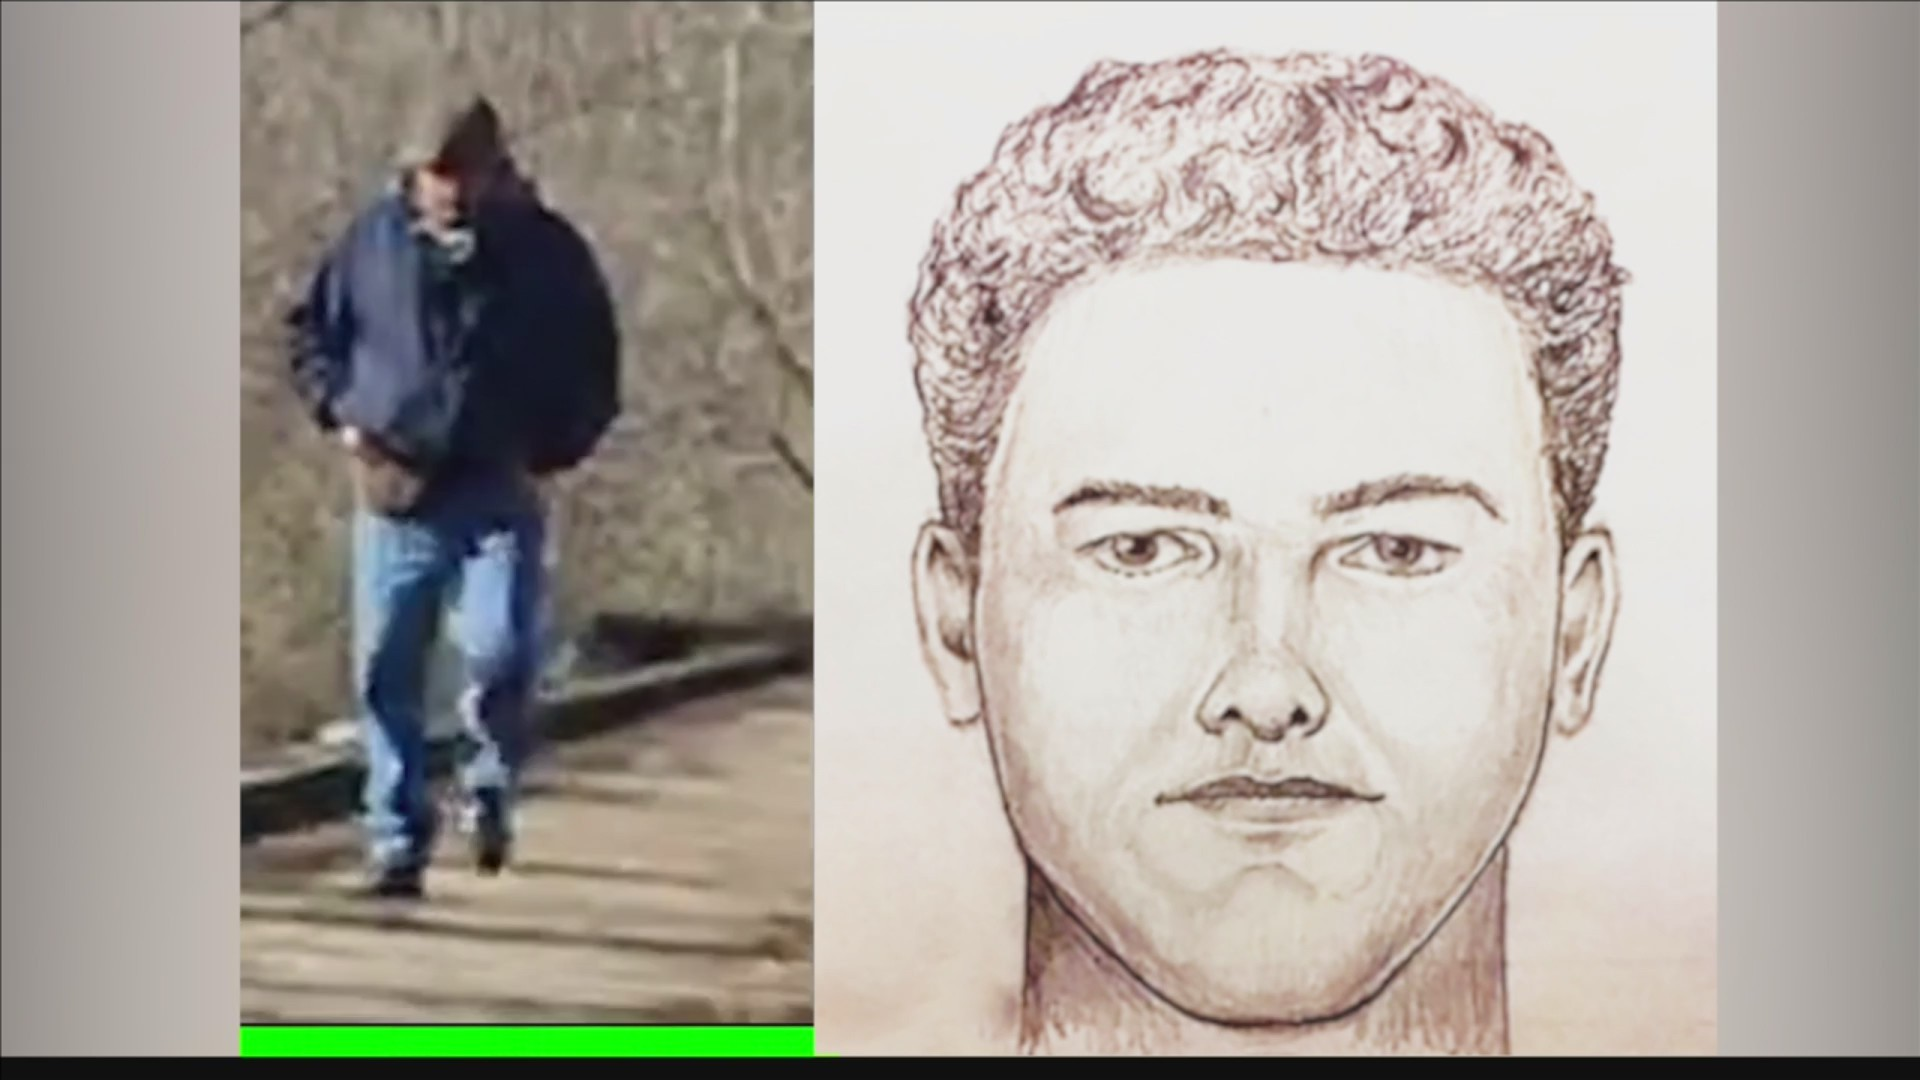 ISP receives more than 1000+ tips after release of new Delphi sketch